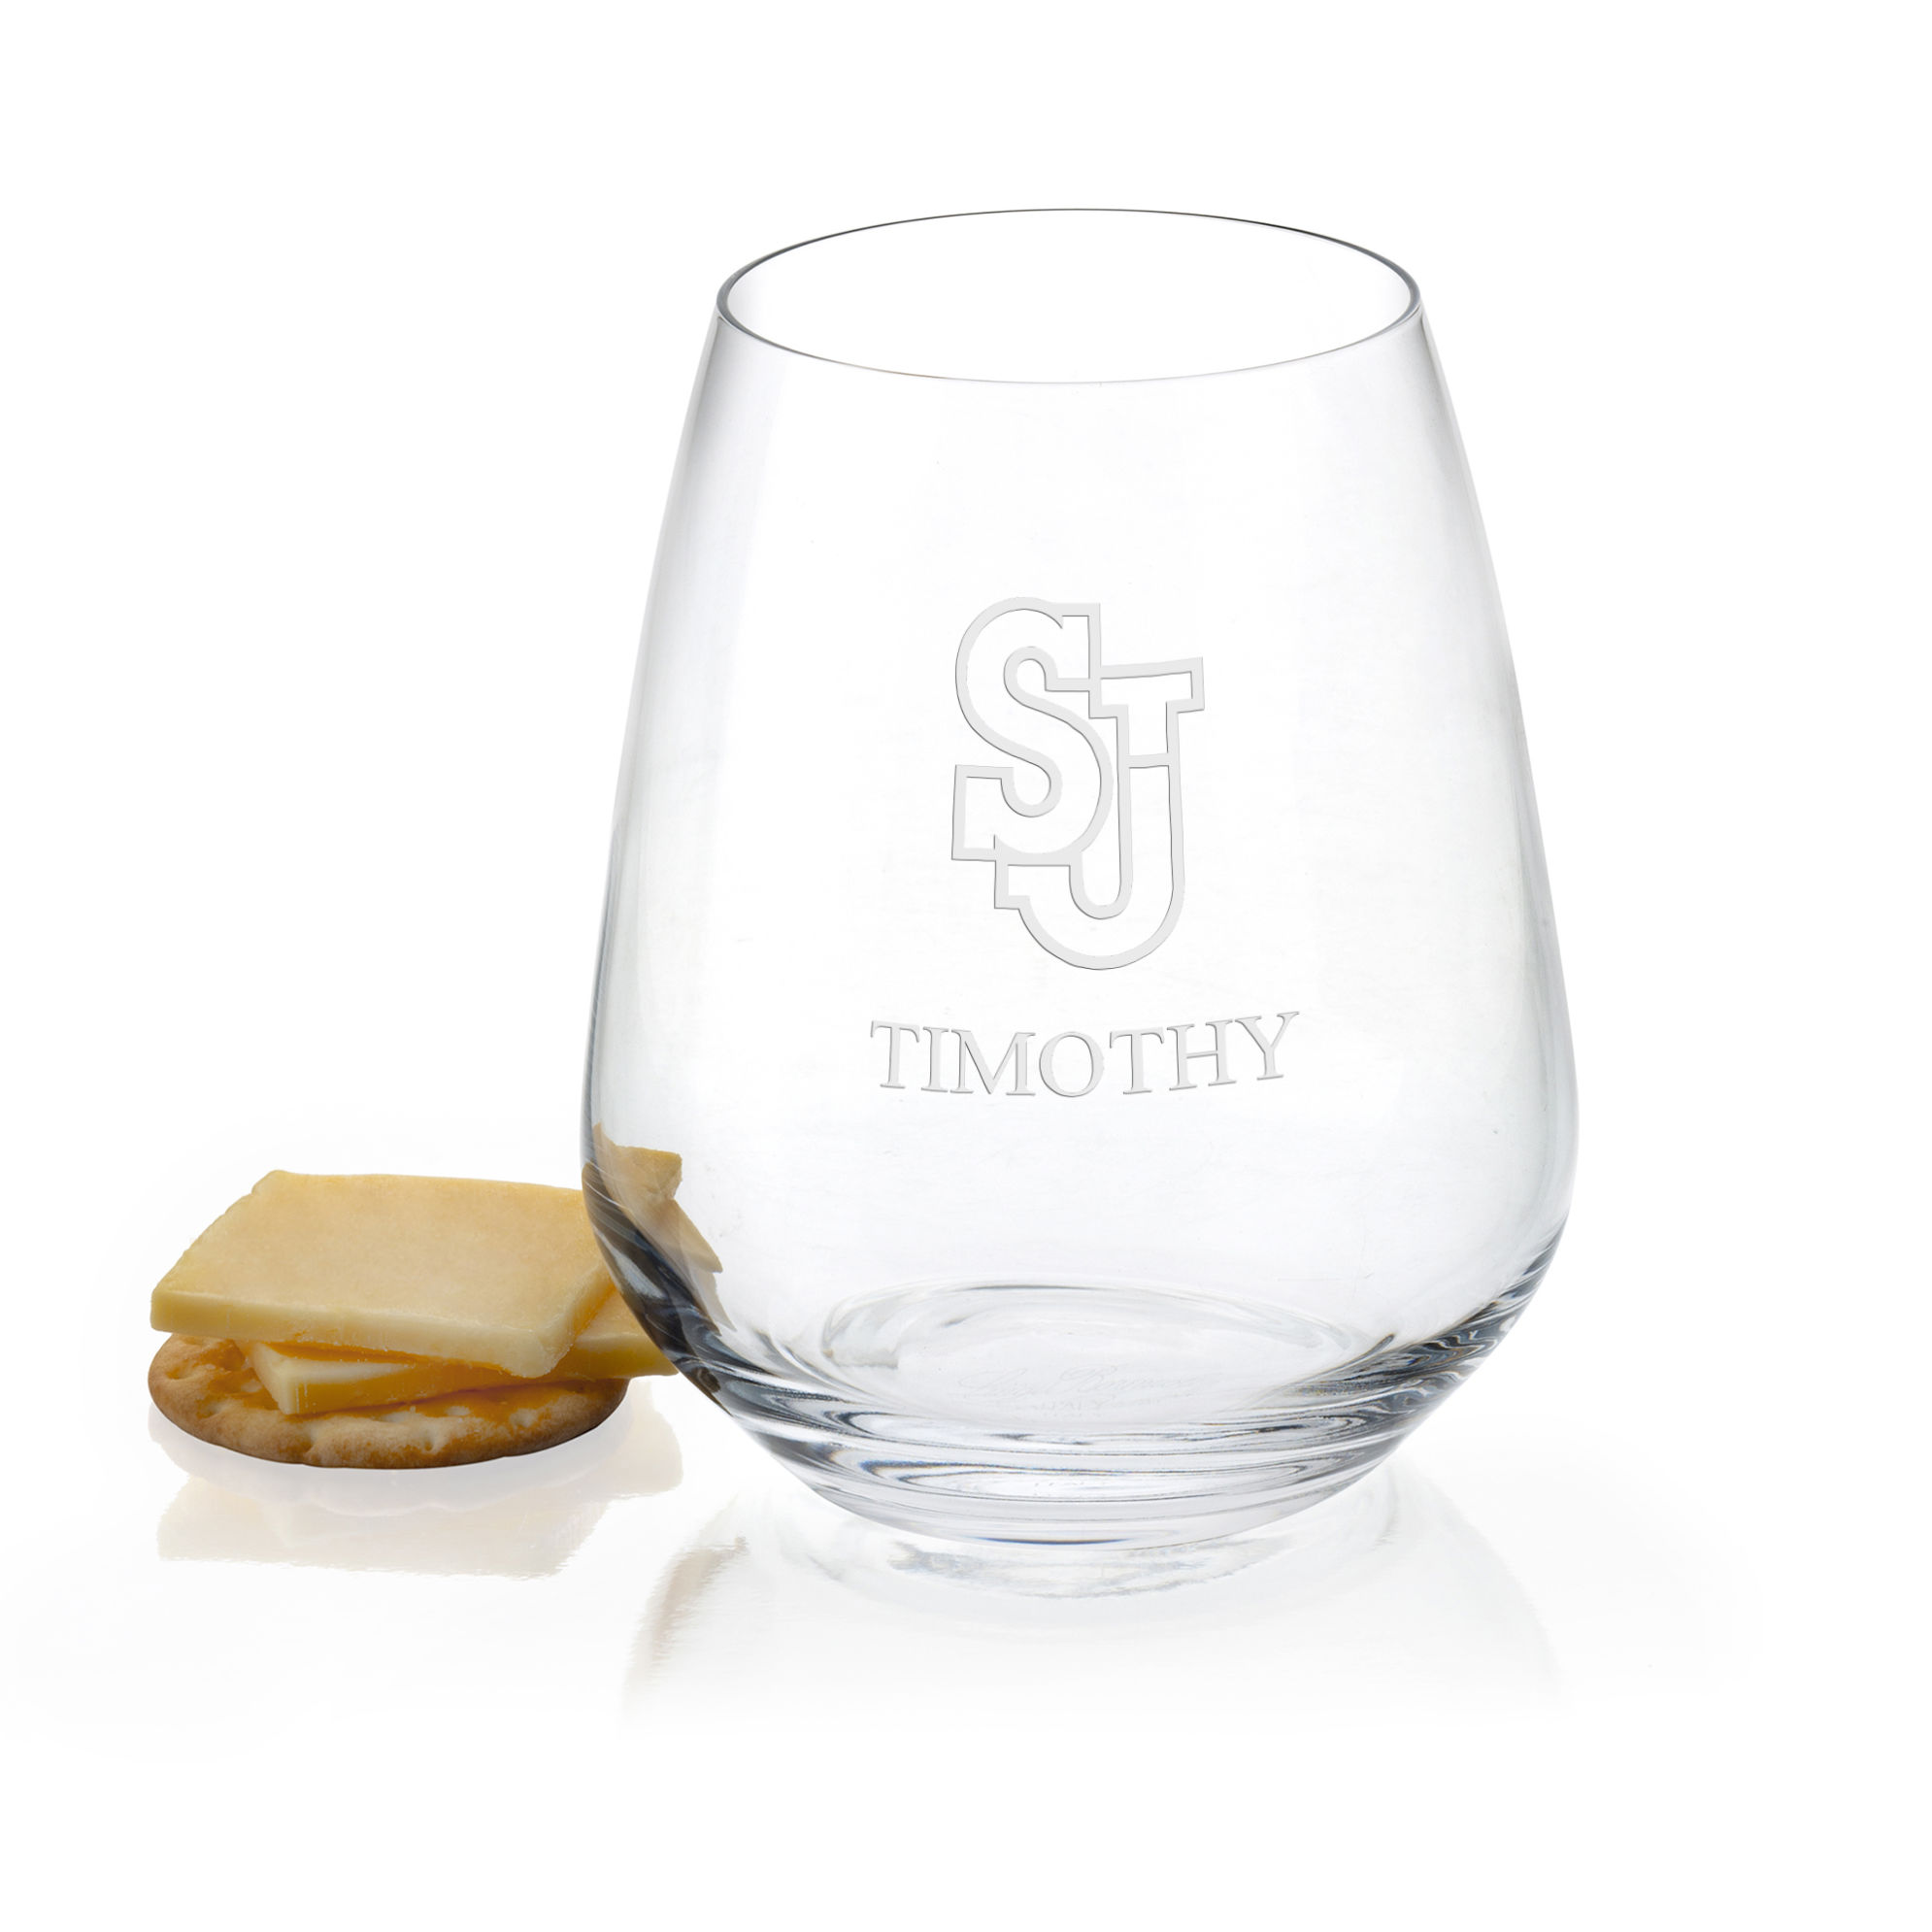 St. John's University Stemless Wine Glasses - Set of 2